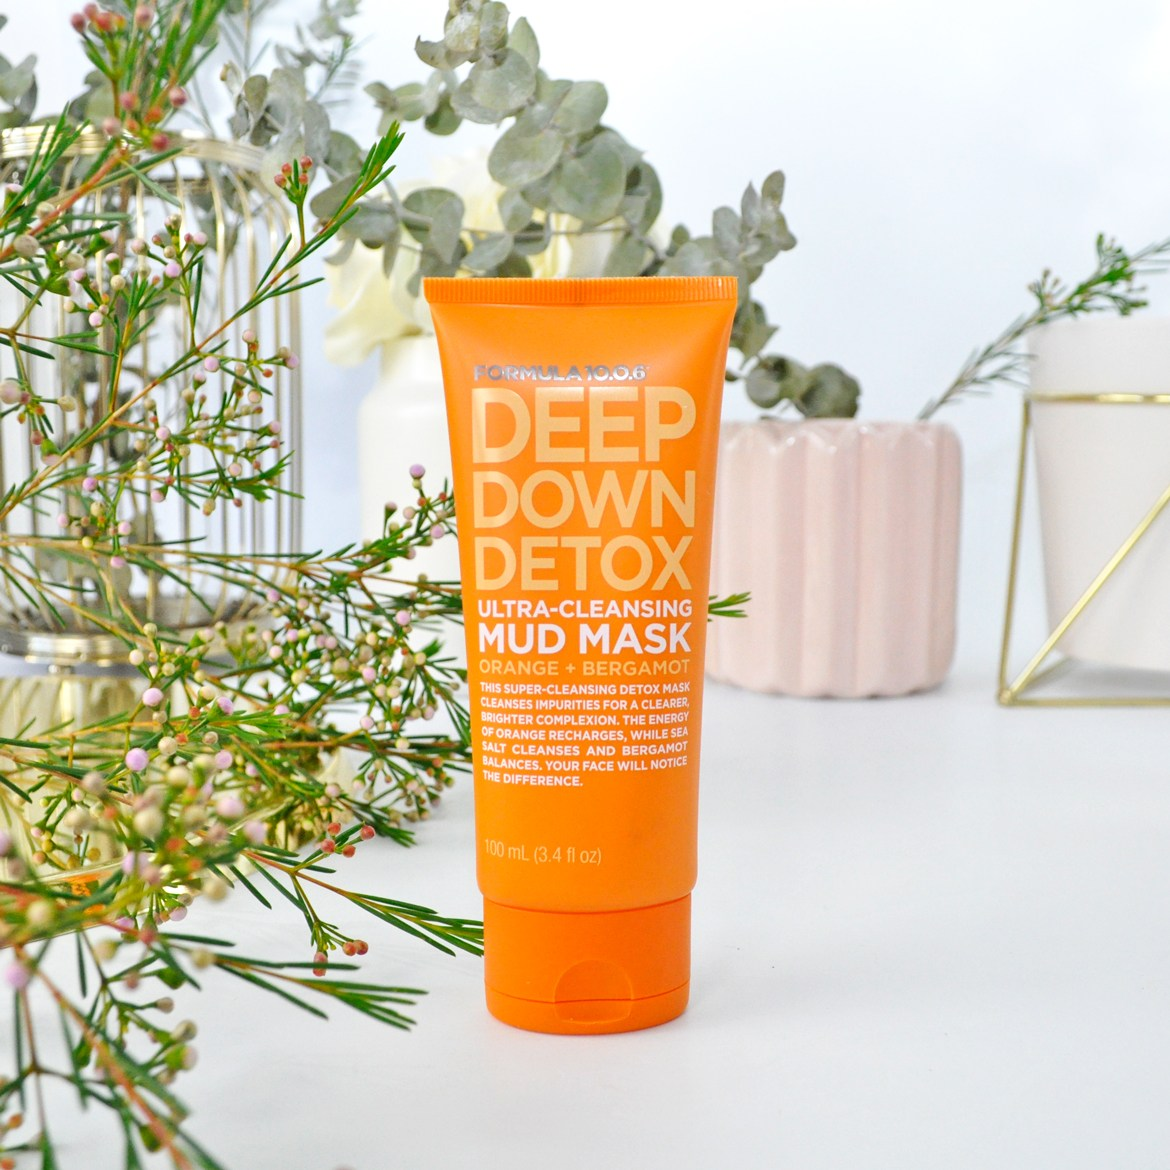 Deep Down Detox Ultra-Cleansing Mud Mask ($6.99)